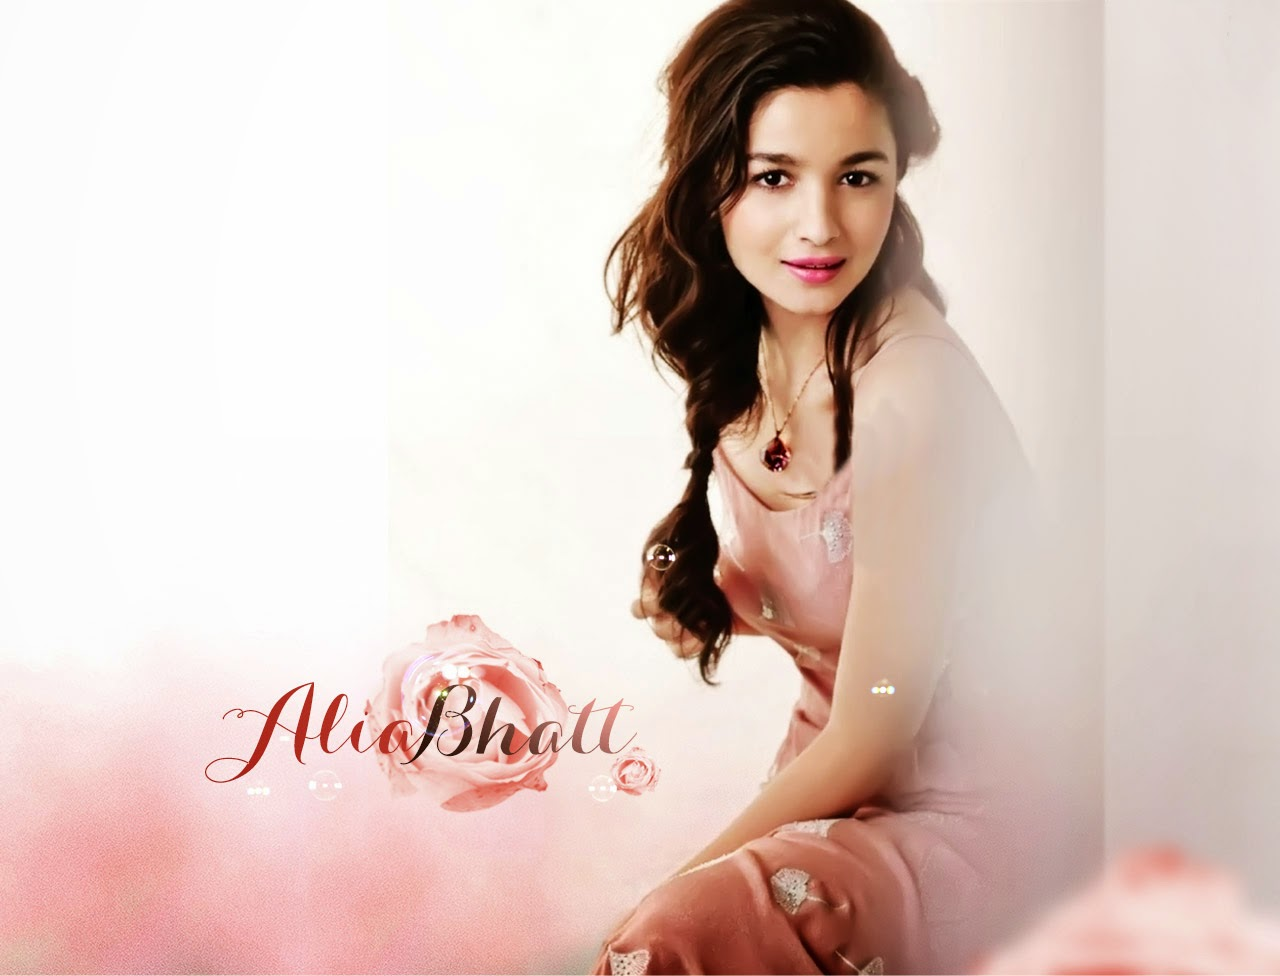 Alia Bhatt Birthday Hd: Global Pictures Gallery: Alia Bhatt Full HD Wallpapers